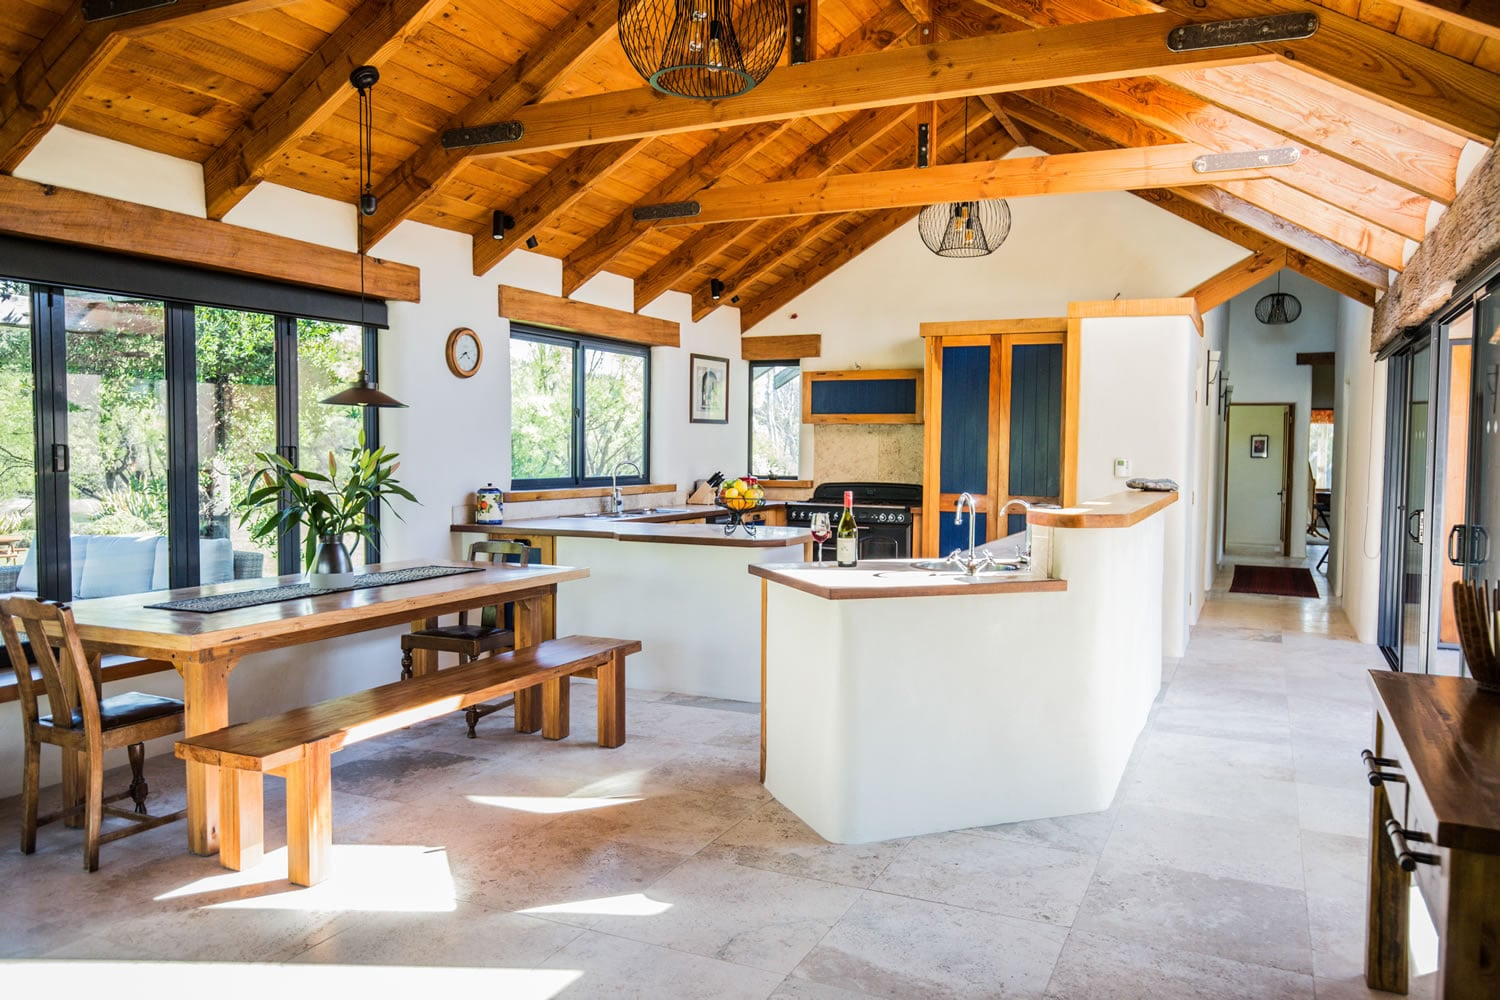 The indoor kitchen area of The River House Wanaka